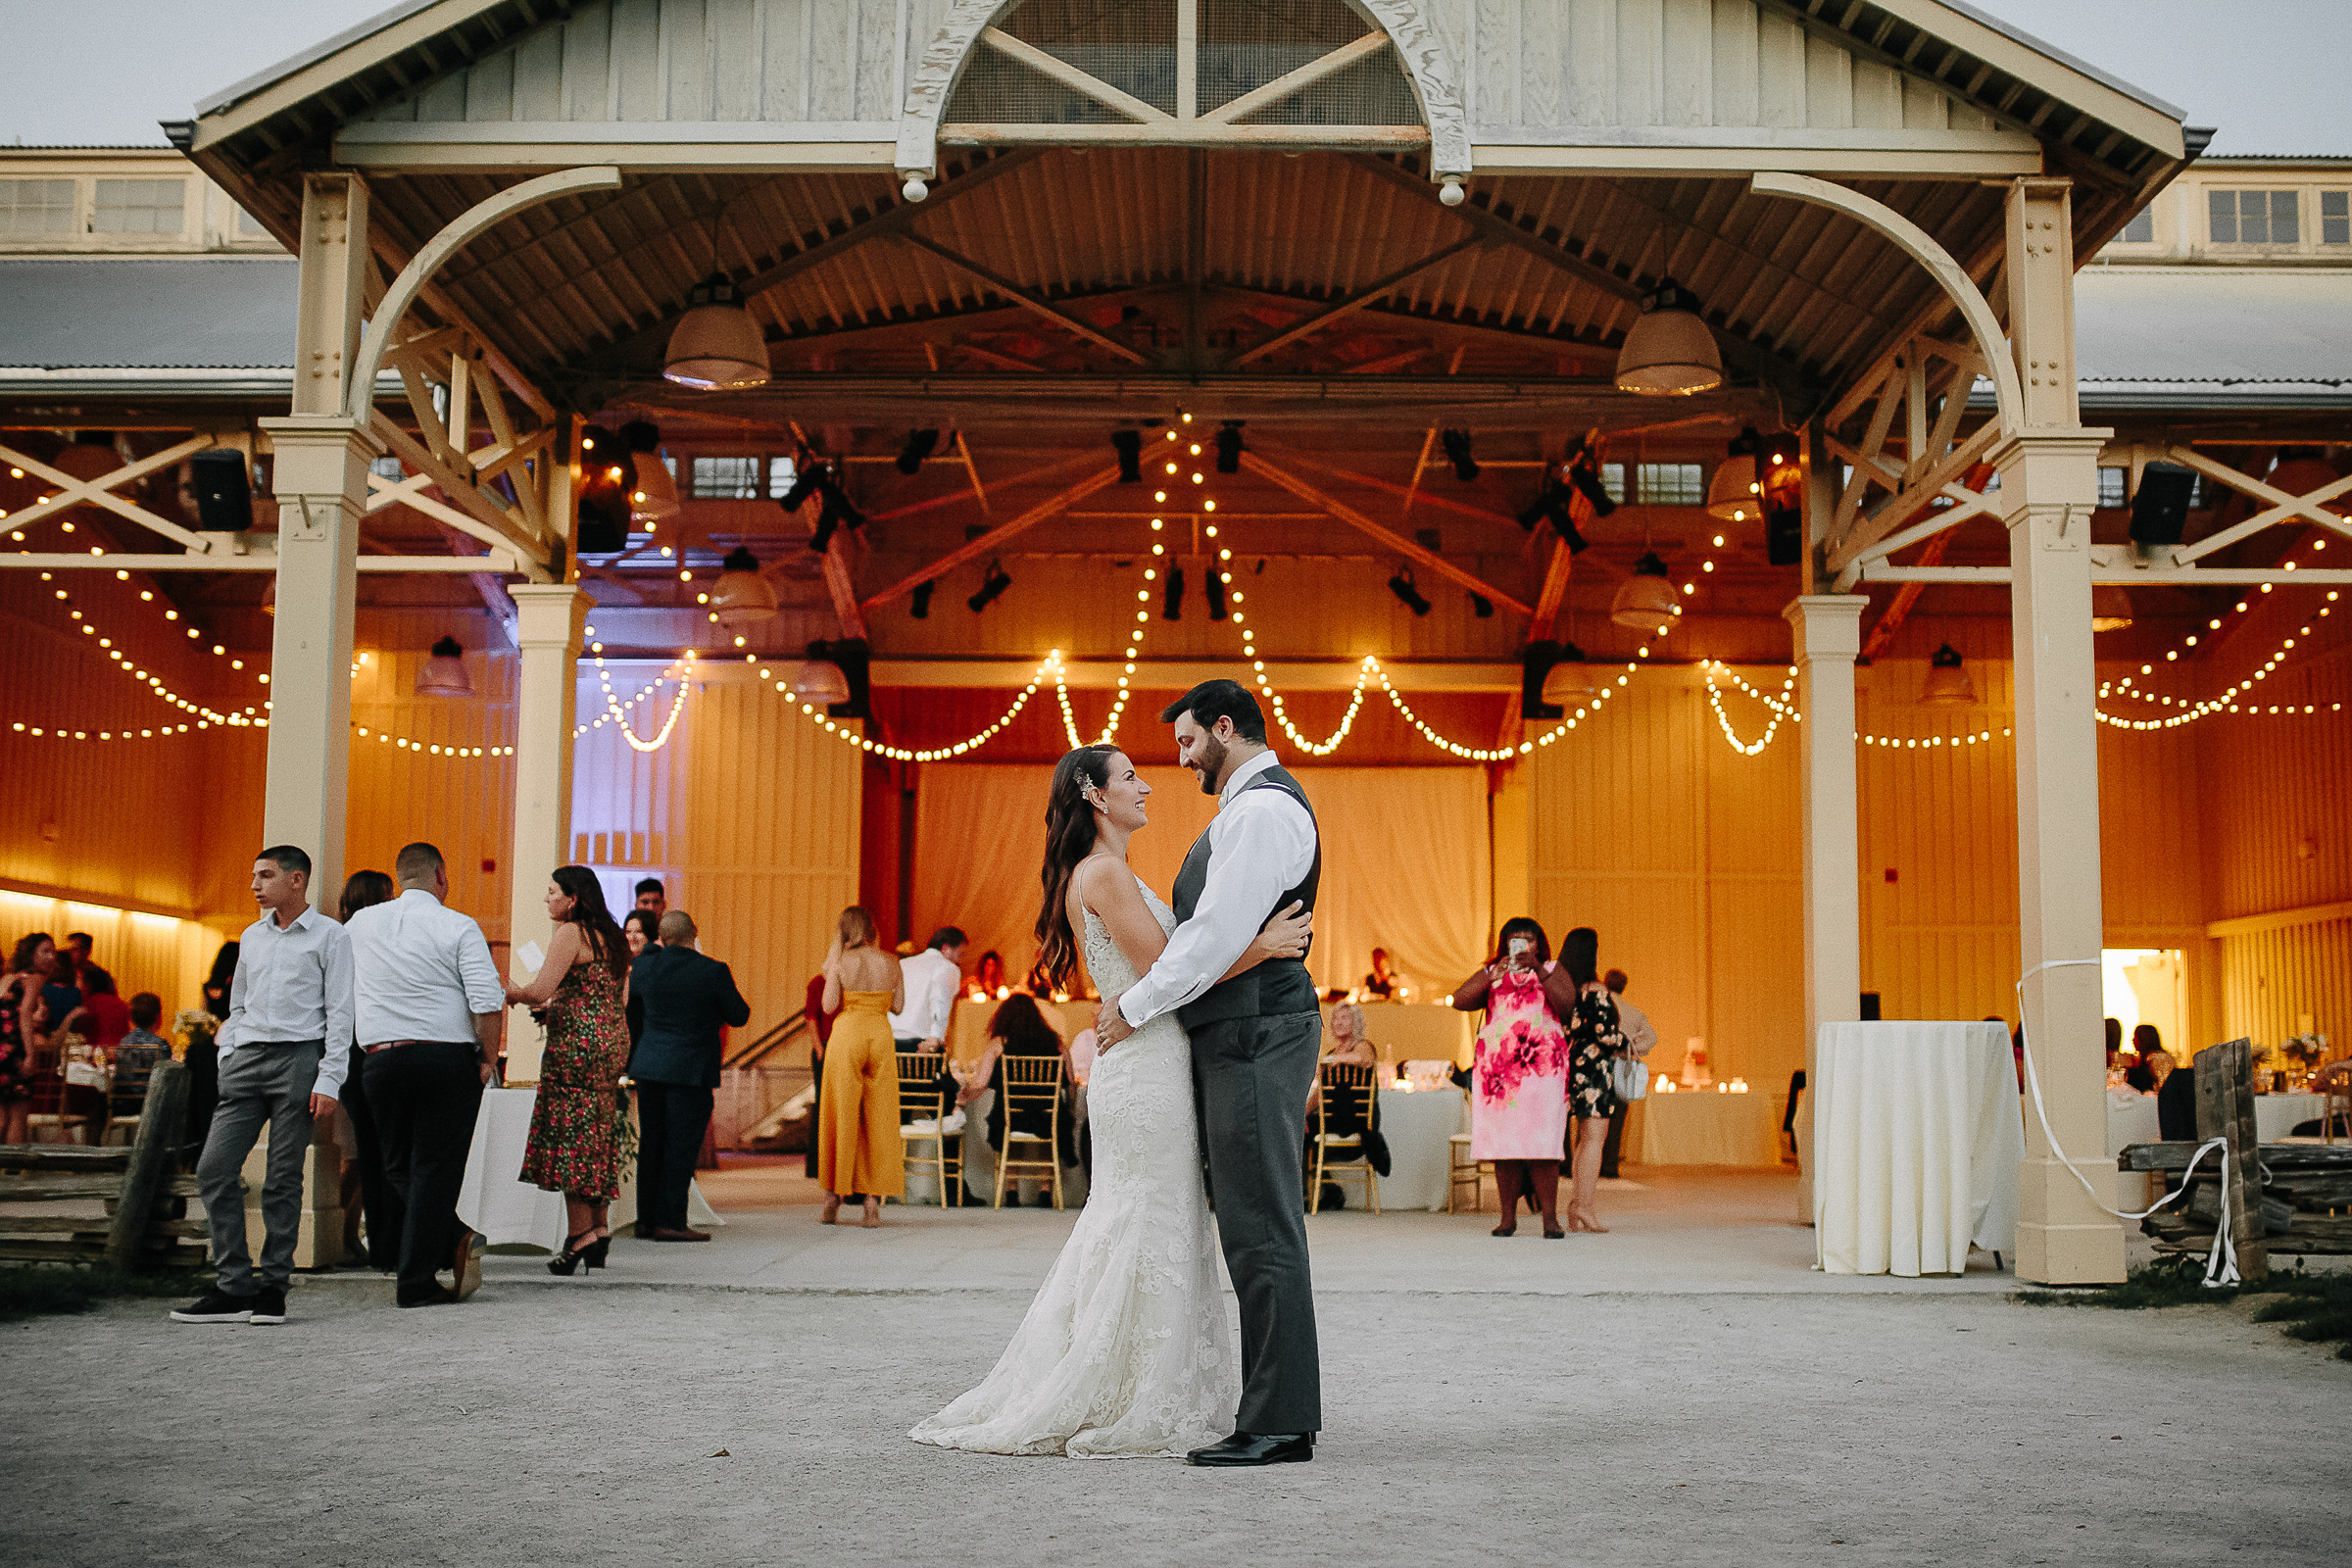 Dragana_Wedding_Photography_Toronto_Black_Creek-93.jpg